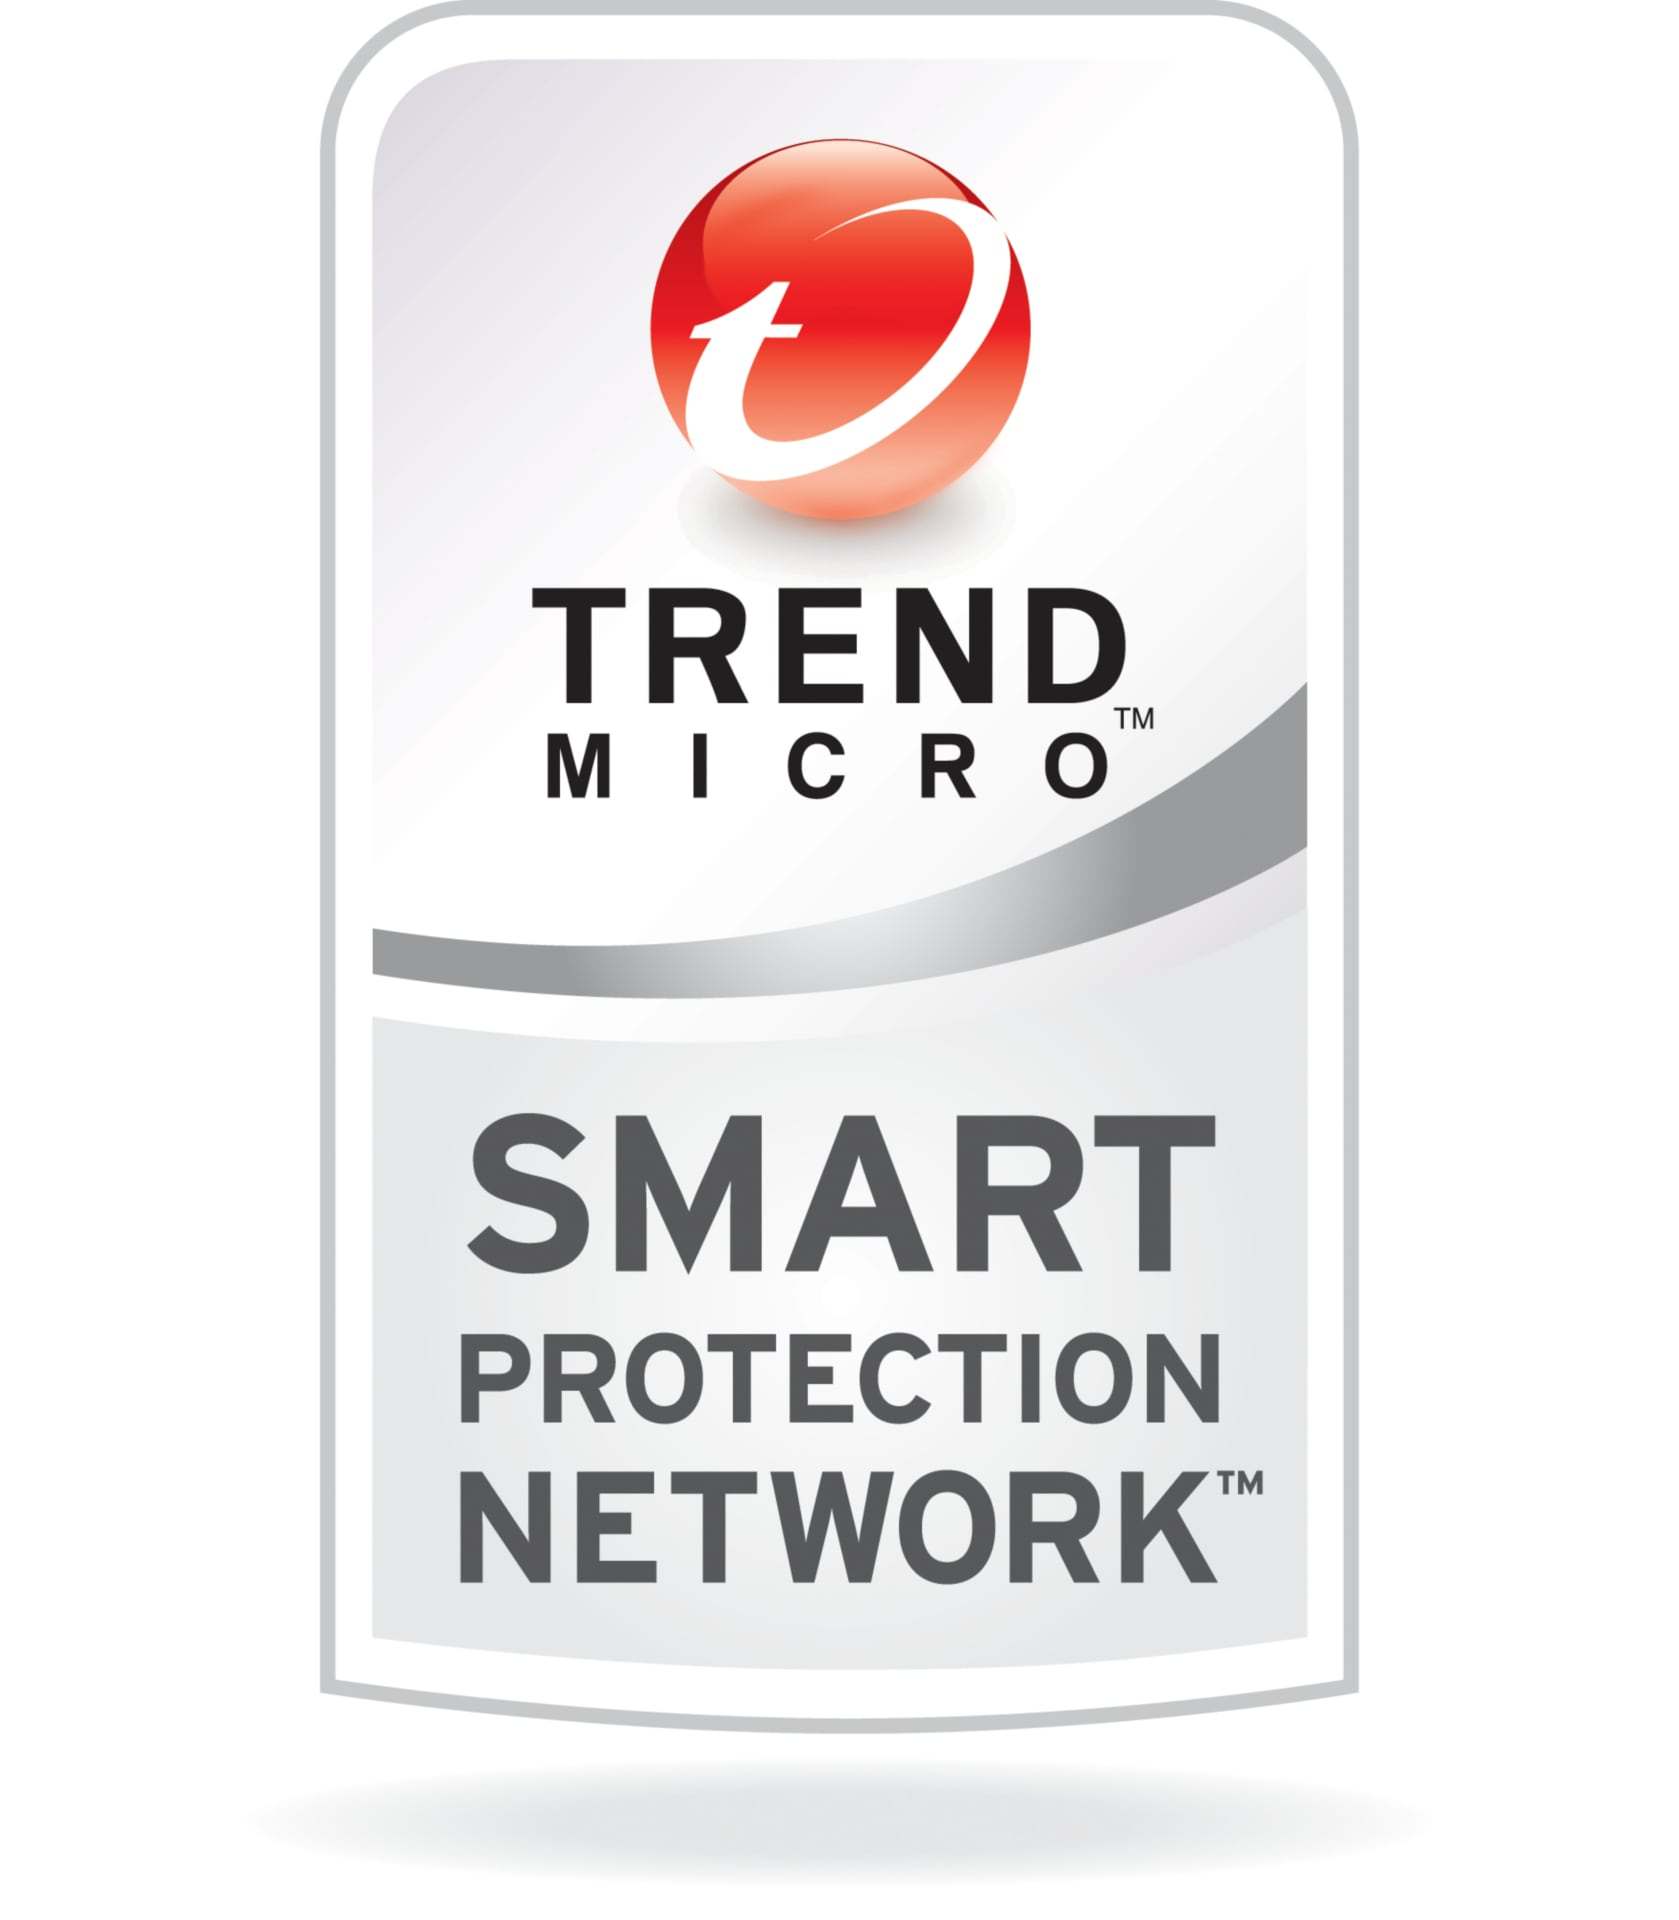 Request a Free Trial of Smart Protection Suite